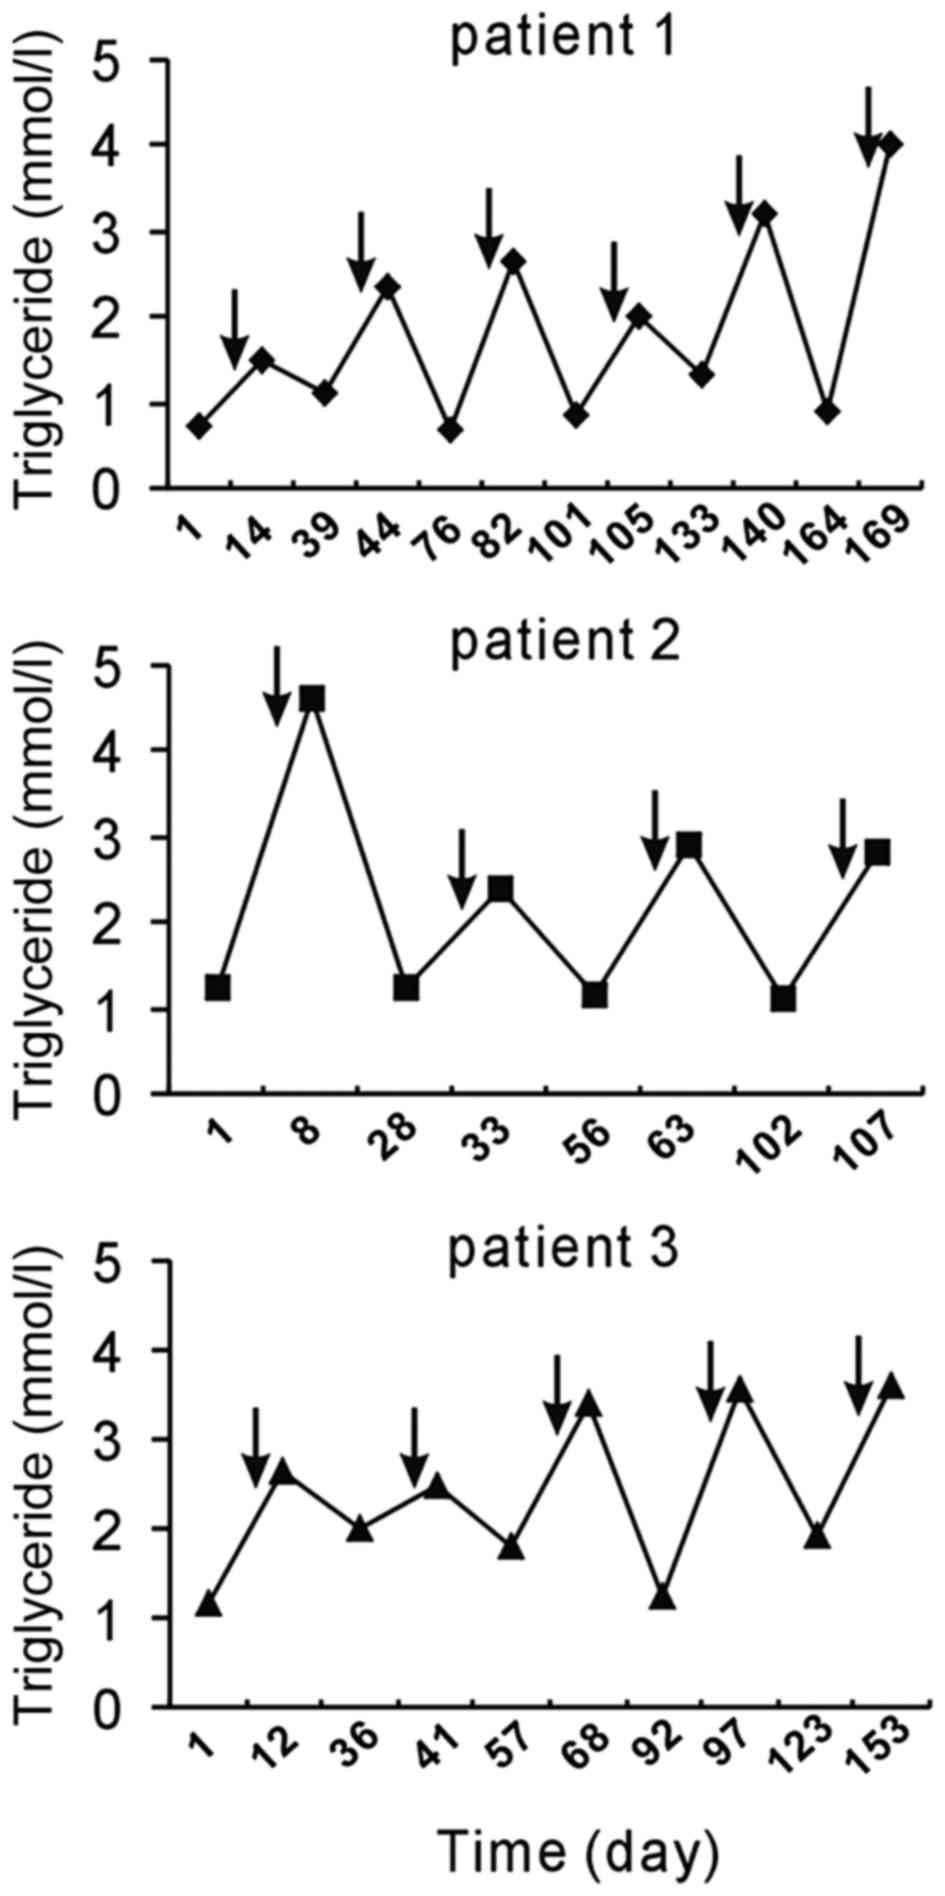 Paclitaxel and platinumbased chemotherapy results in transient chemotherapy with tp induced a fluctuation in serum triglyceride levels arrows indicate the time points of tp chemotherapy administration pooptronica Gallery